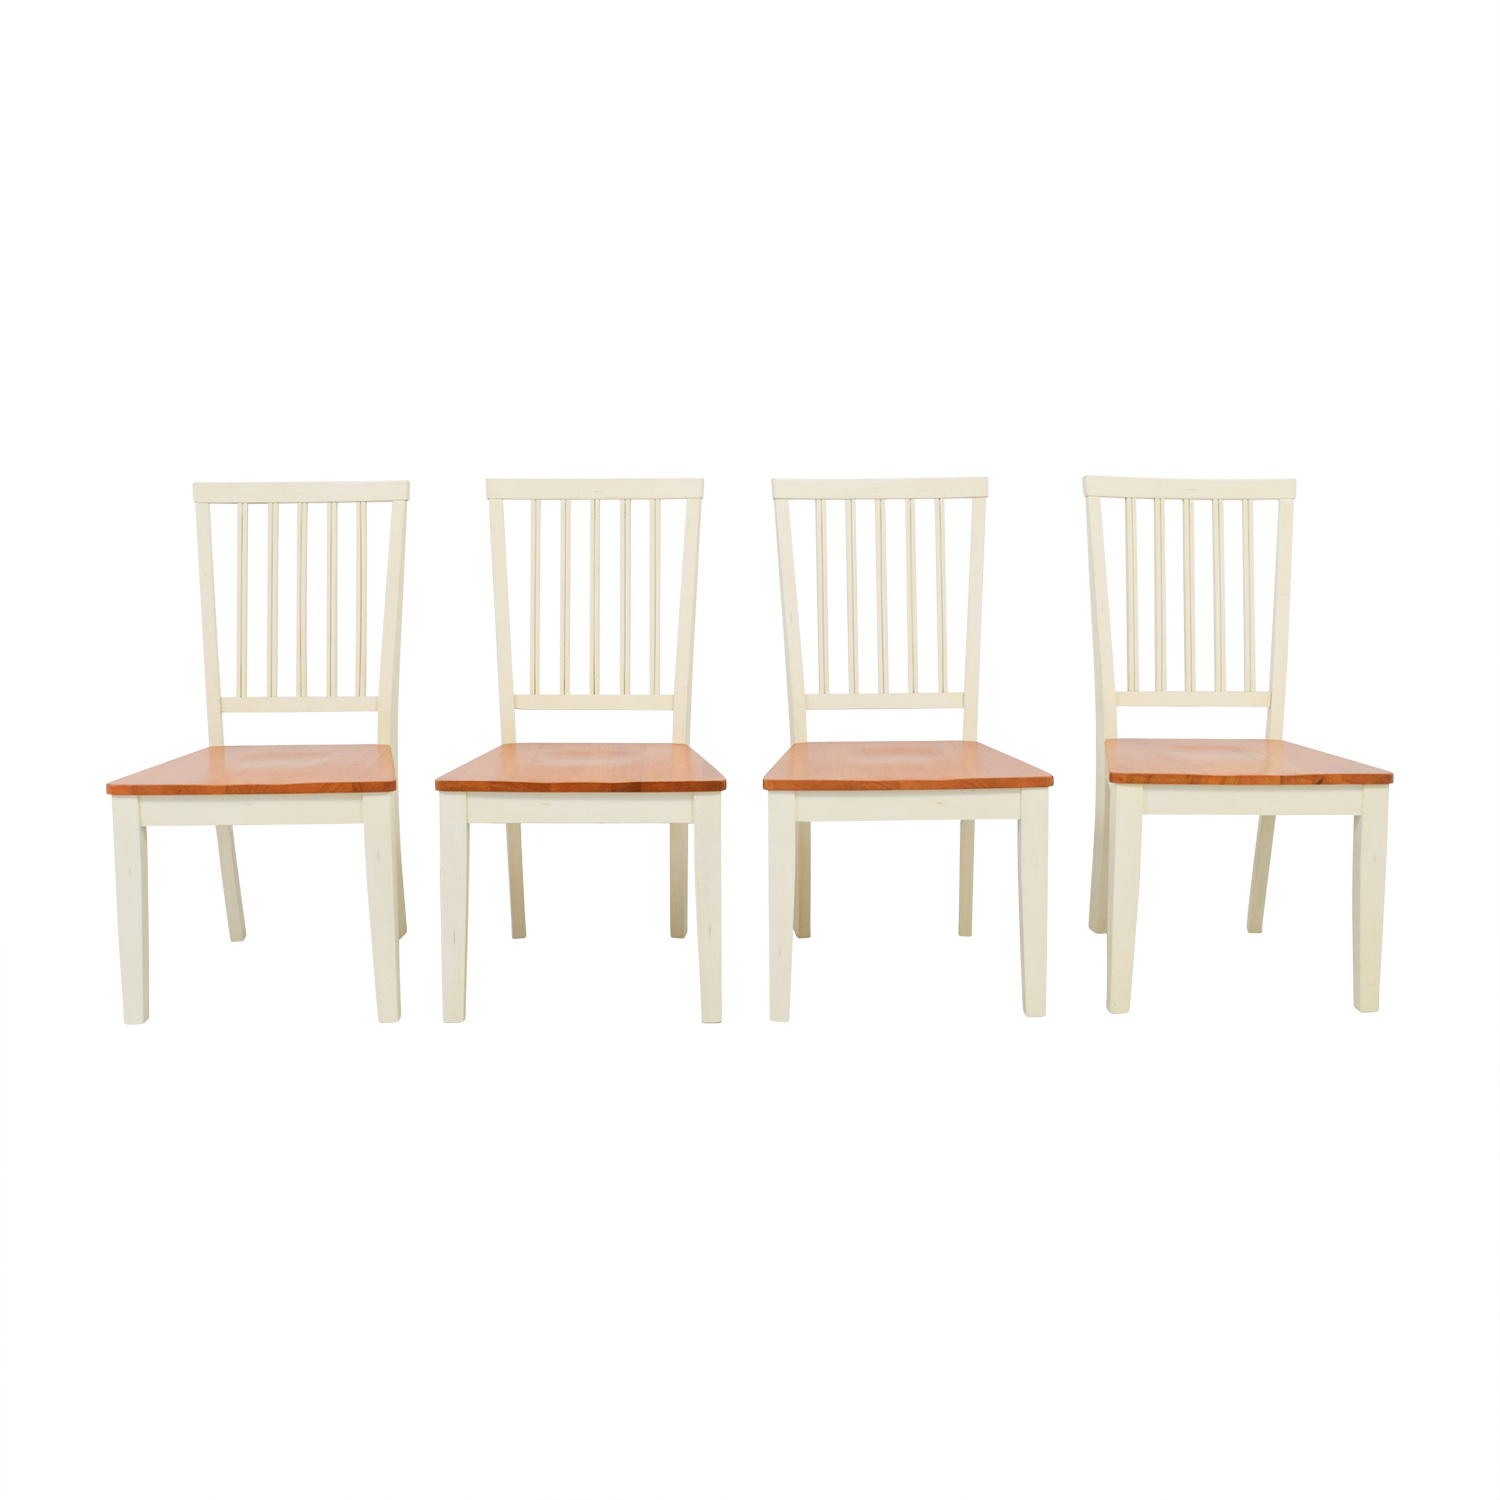 Raymour & Flanigan Raymour & Flanigan Ashby Cherry and Antique White Dining Chairs nj